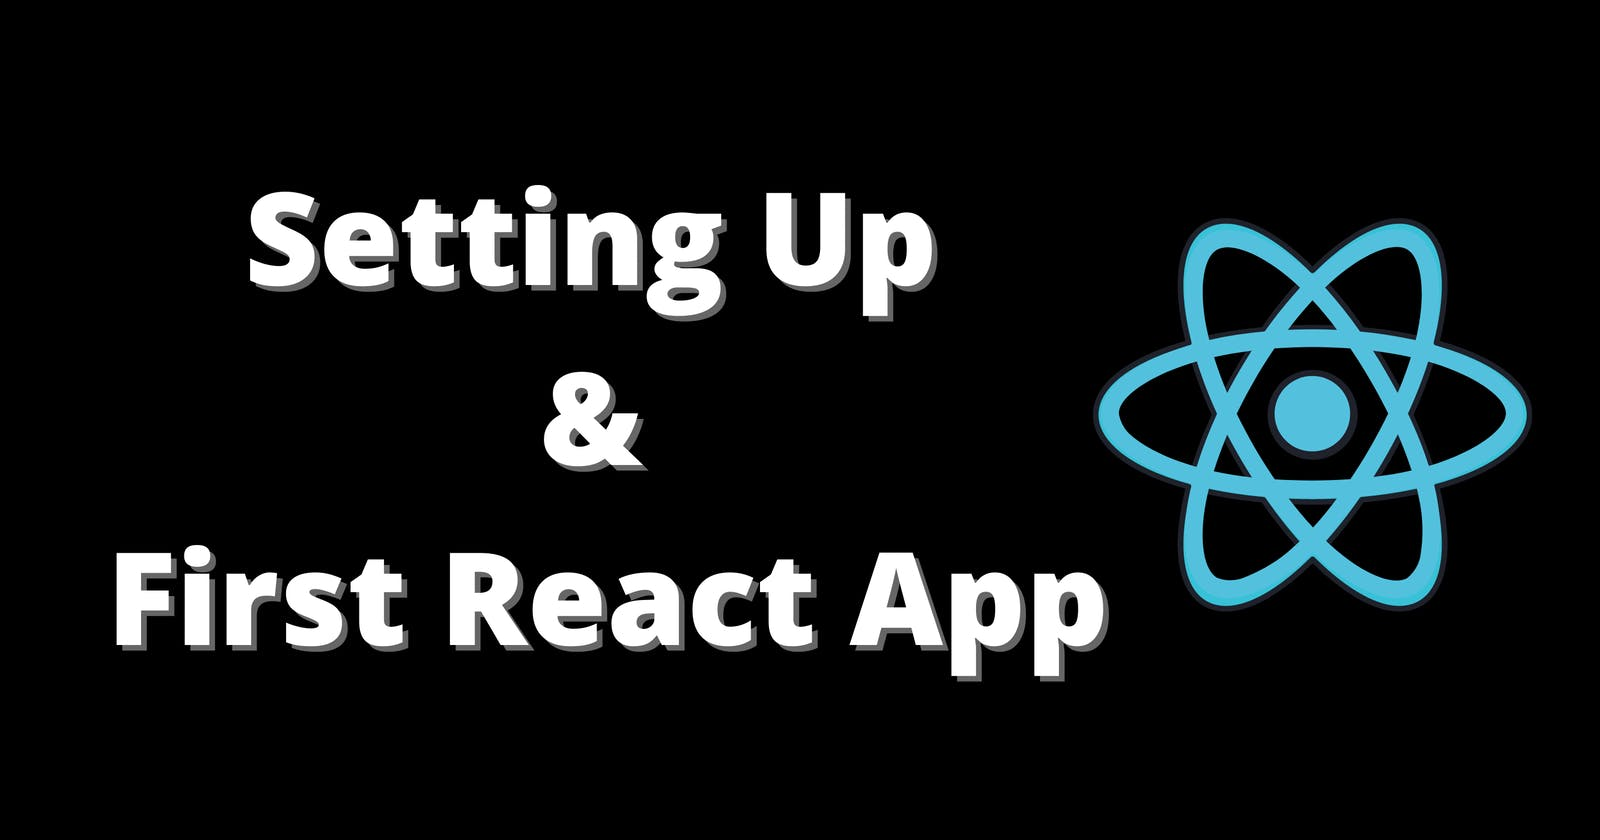 Setting up & First React App